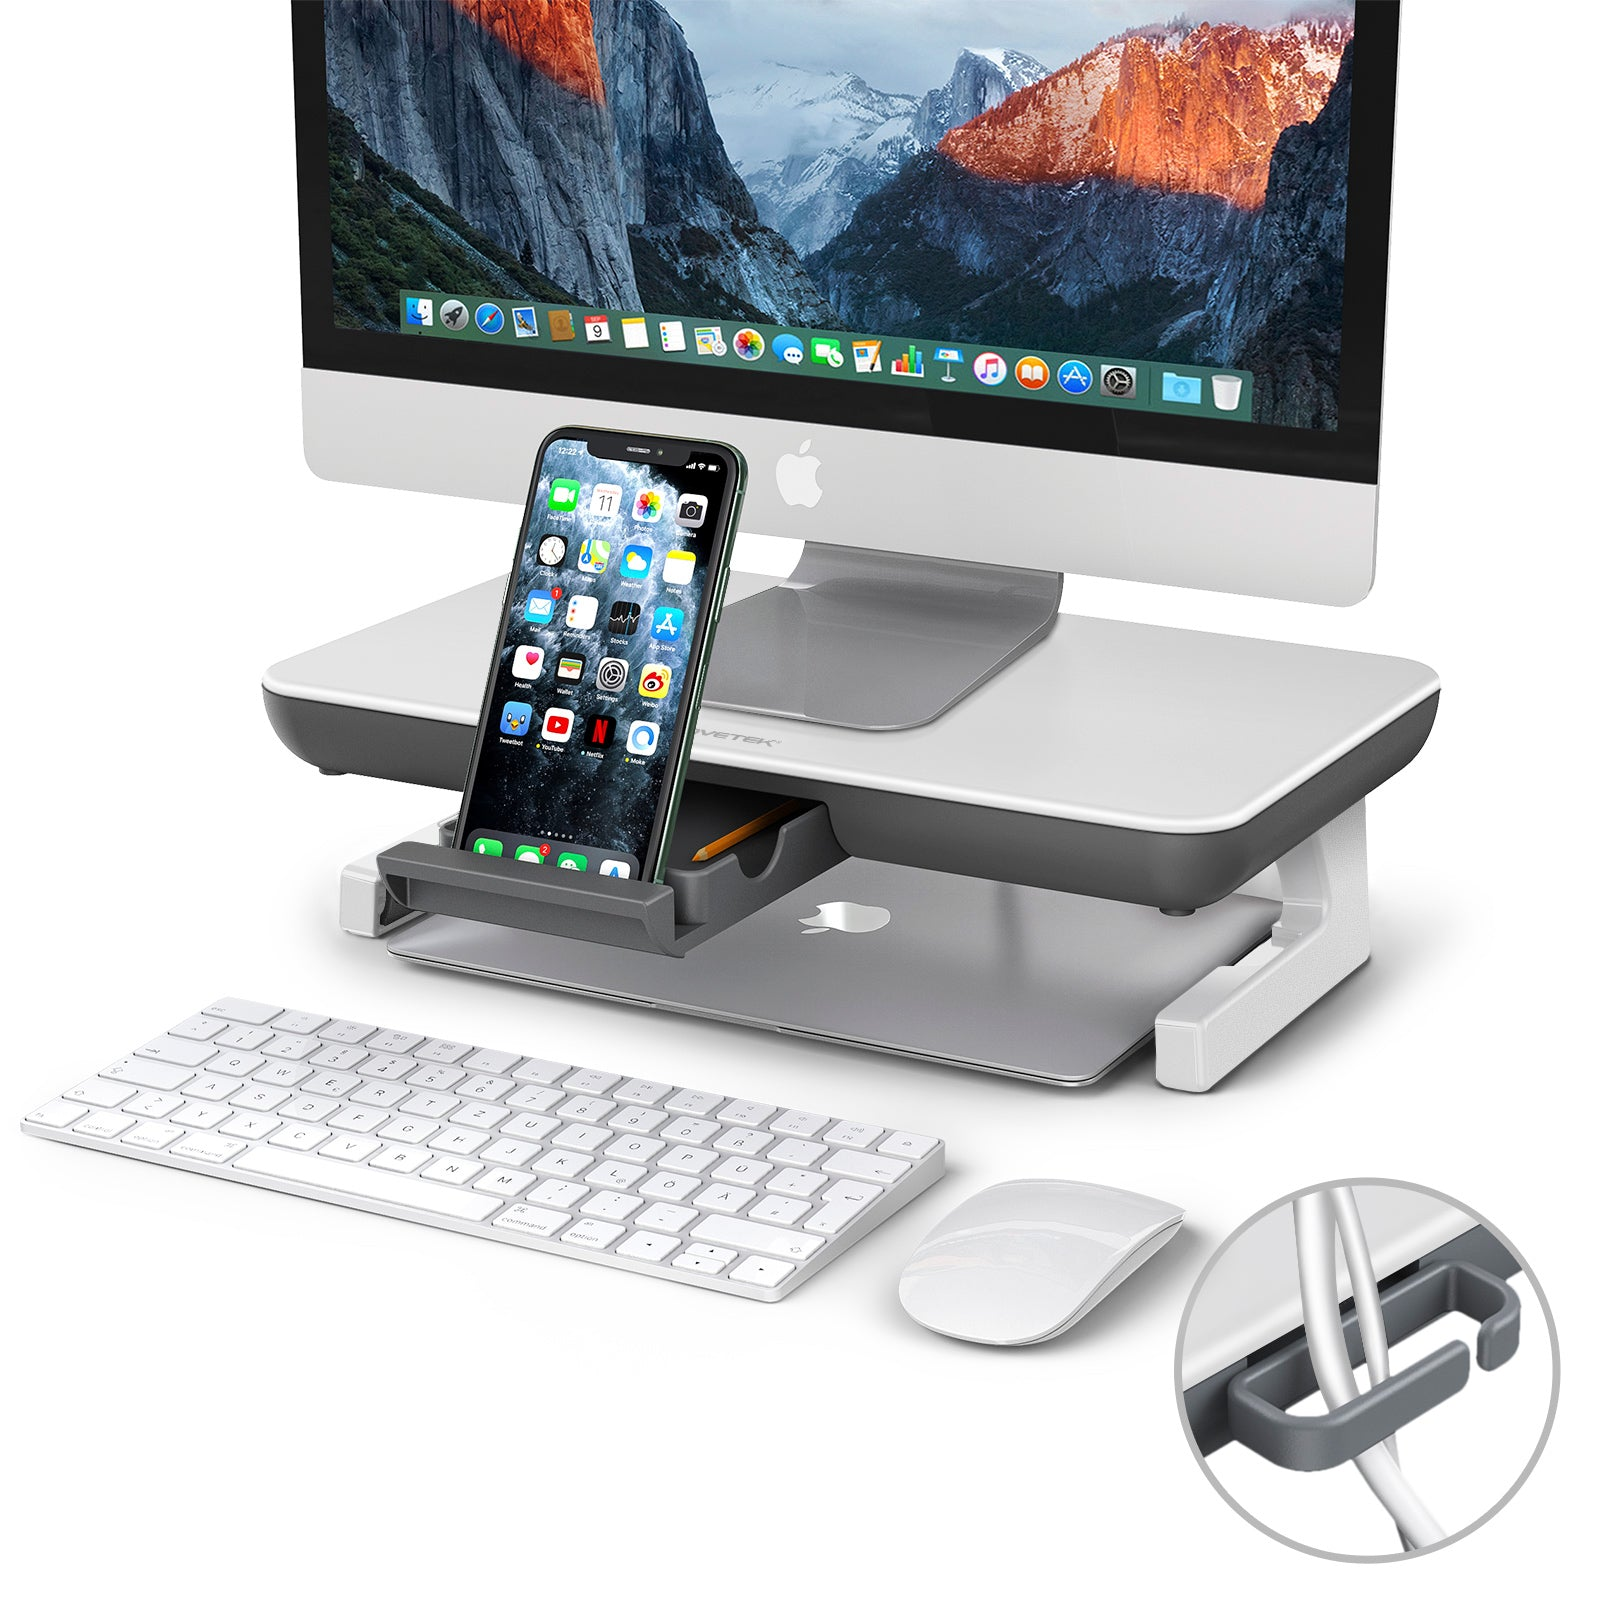 AboveTEK Adjustable Computer Stand with Storage Drawer (MS-230W)